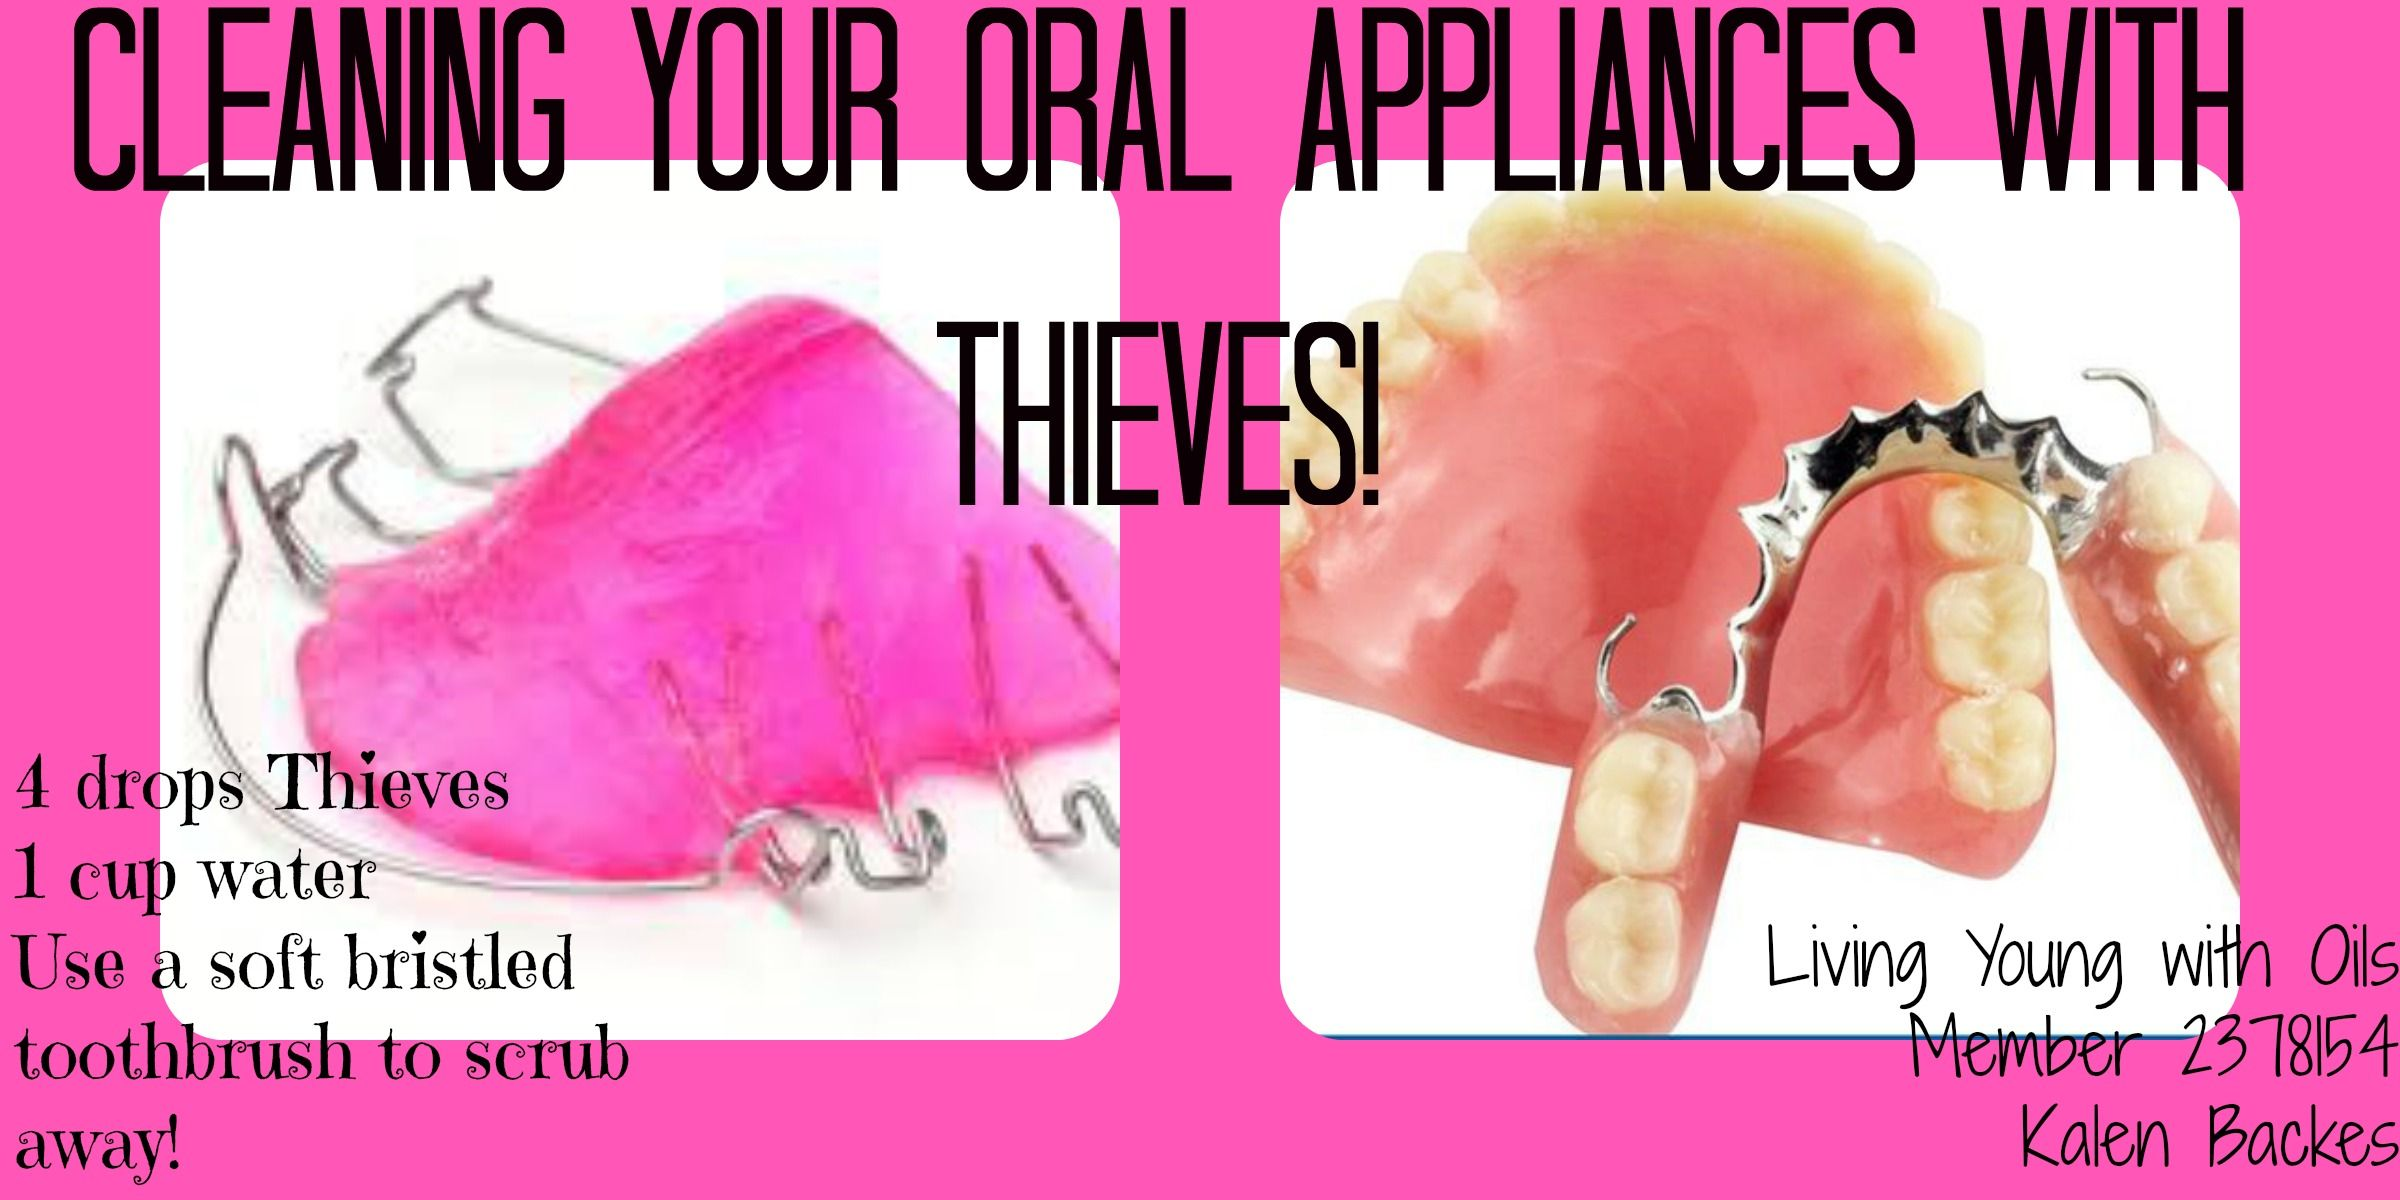 Clean your oral retainer, partial or denture with THIEVES